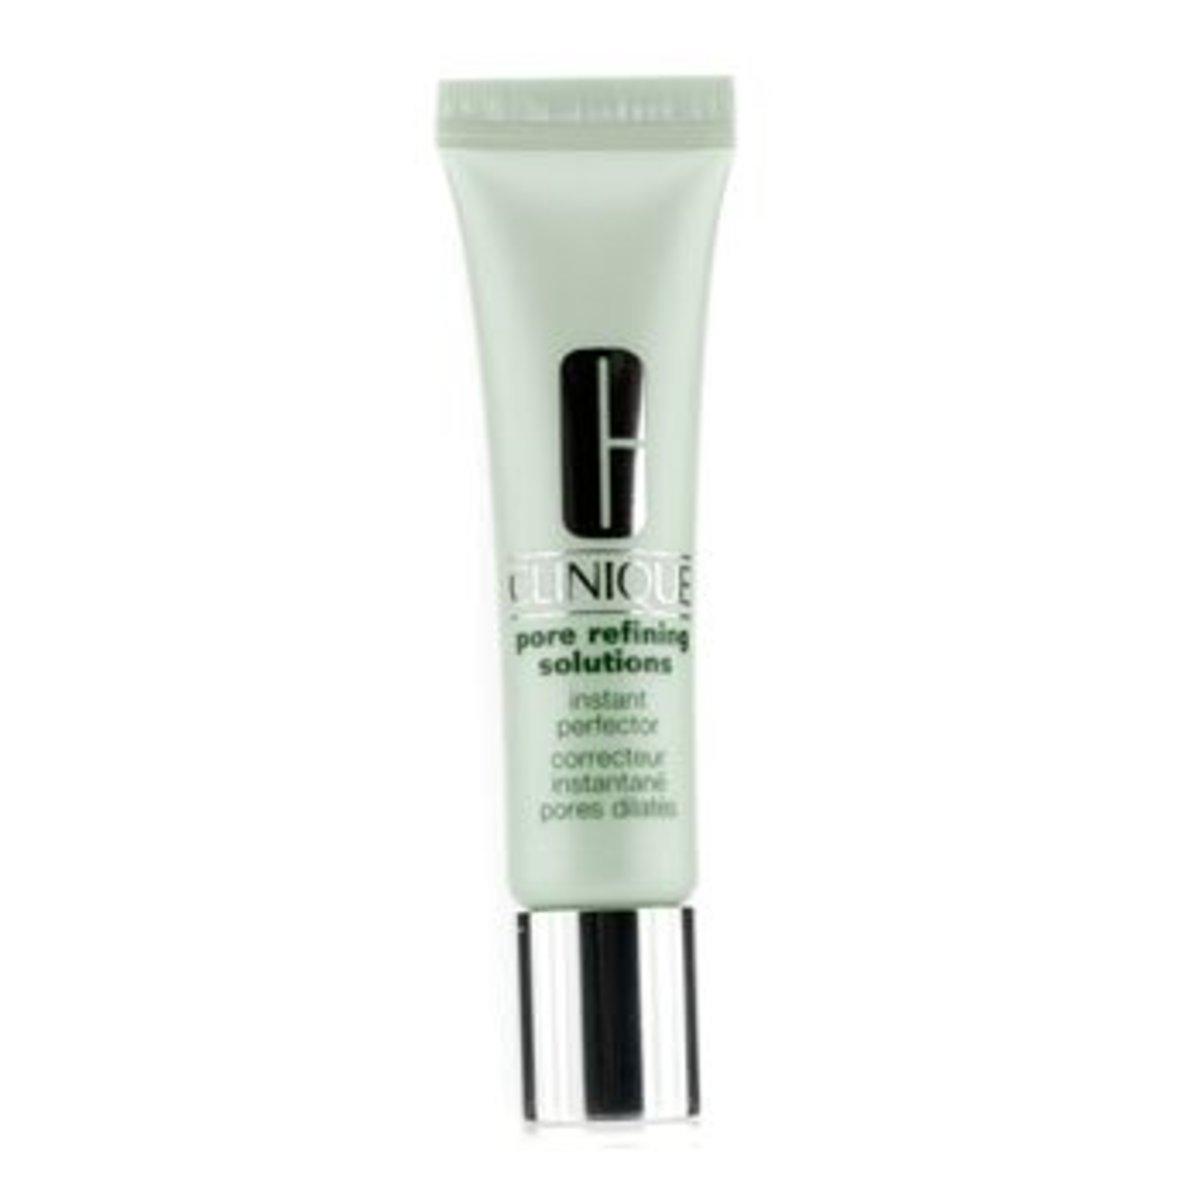 Pore Refining Solutions Instant Perfector - Invisible Bright 15ml/0.5oz - [Parallel Import Product]